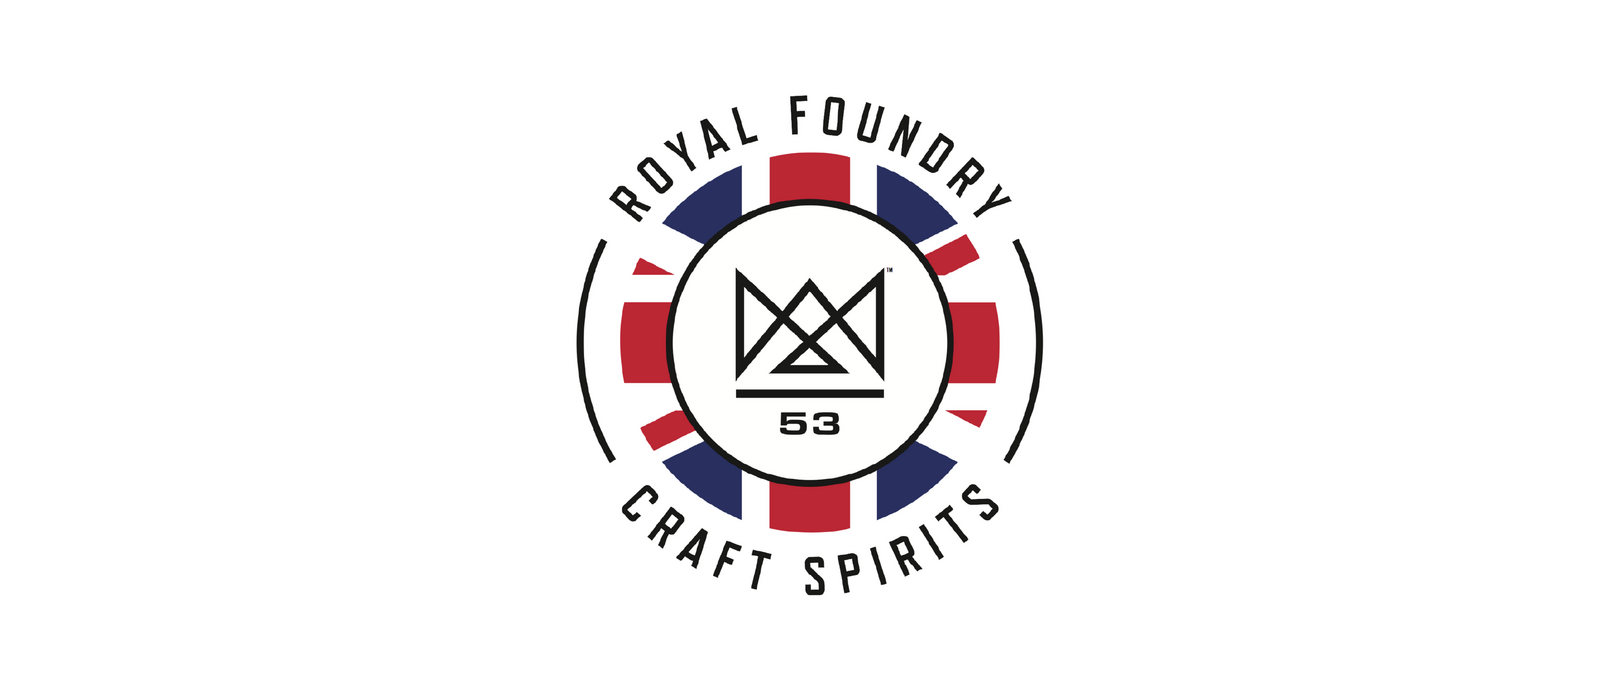 RoyalFoundry_logo